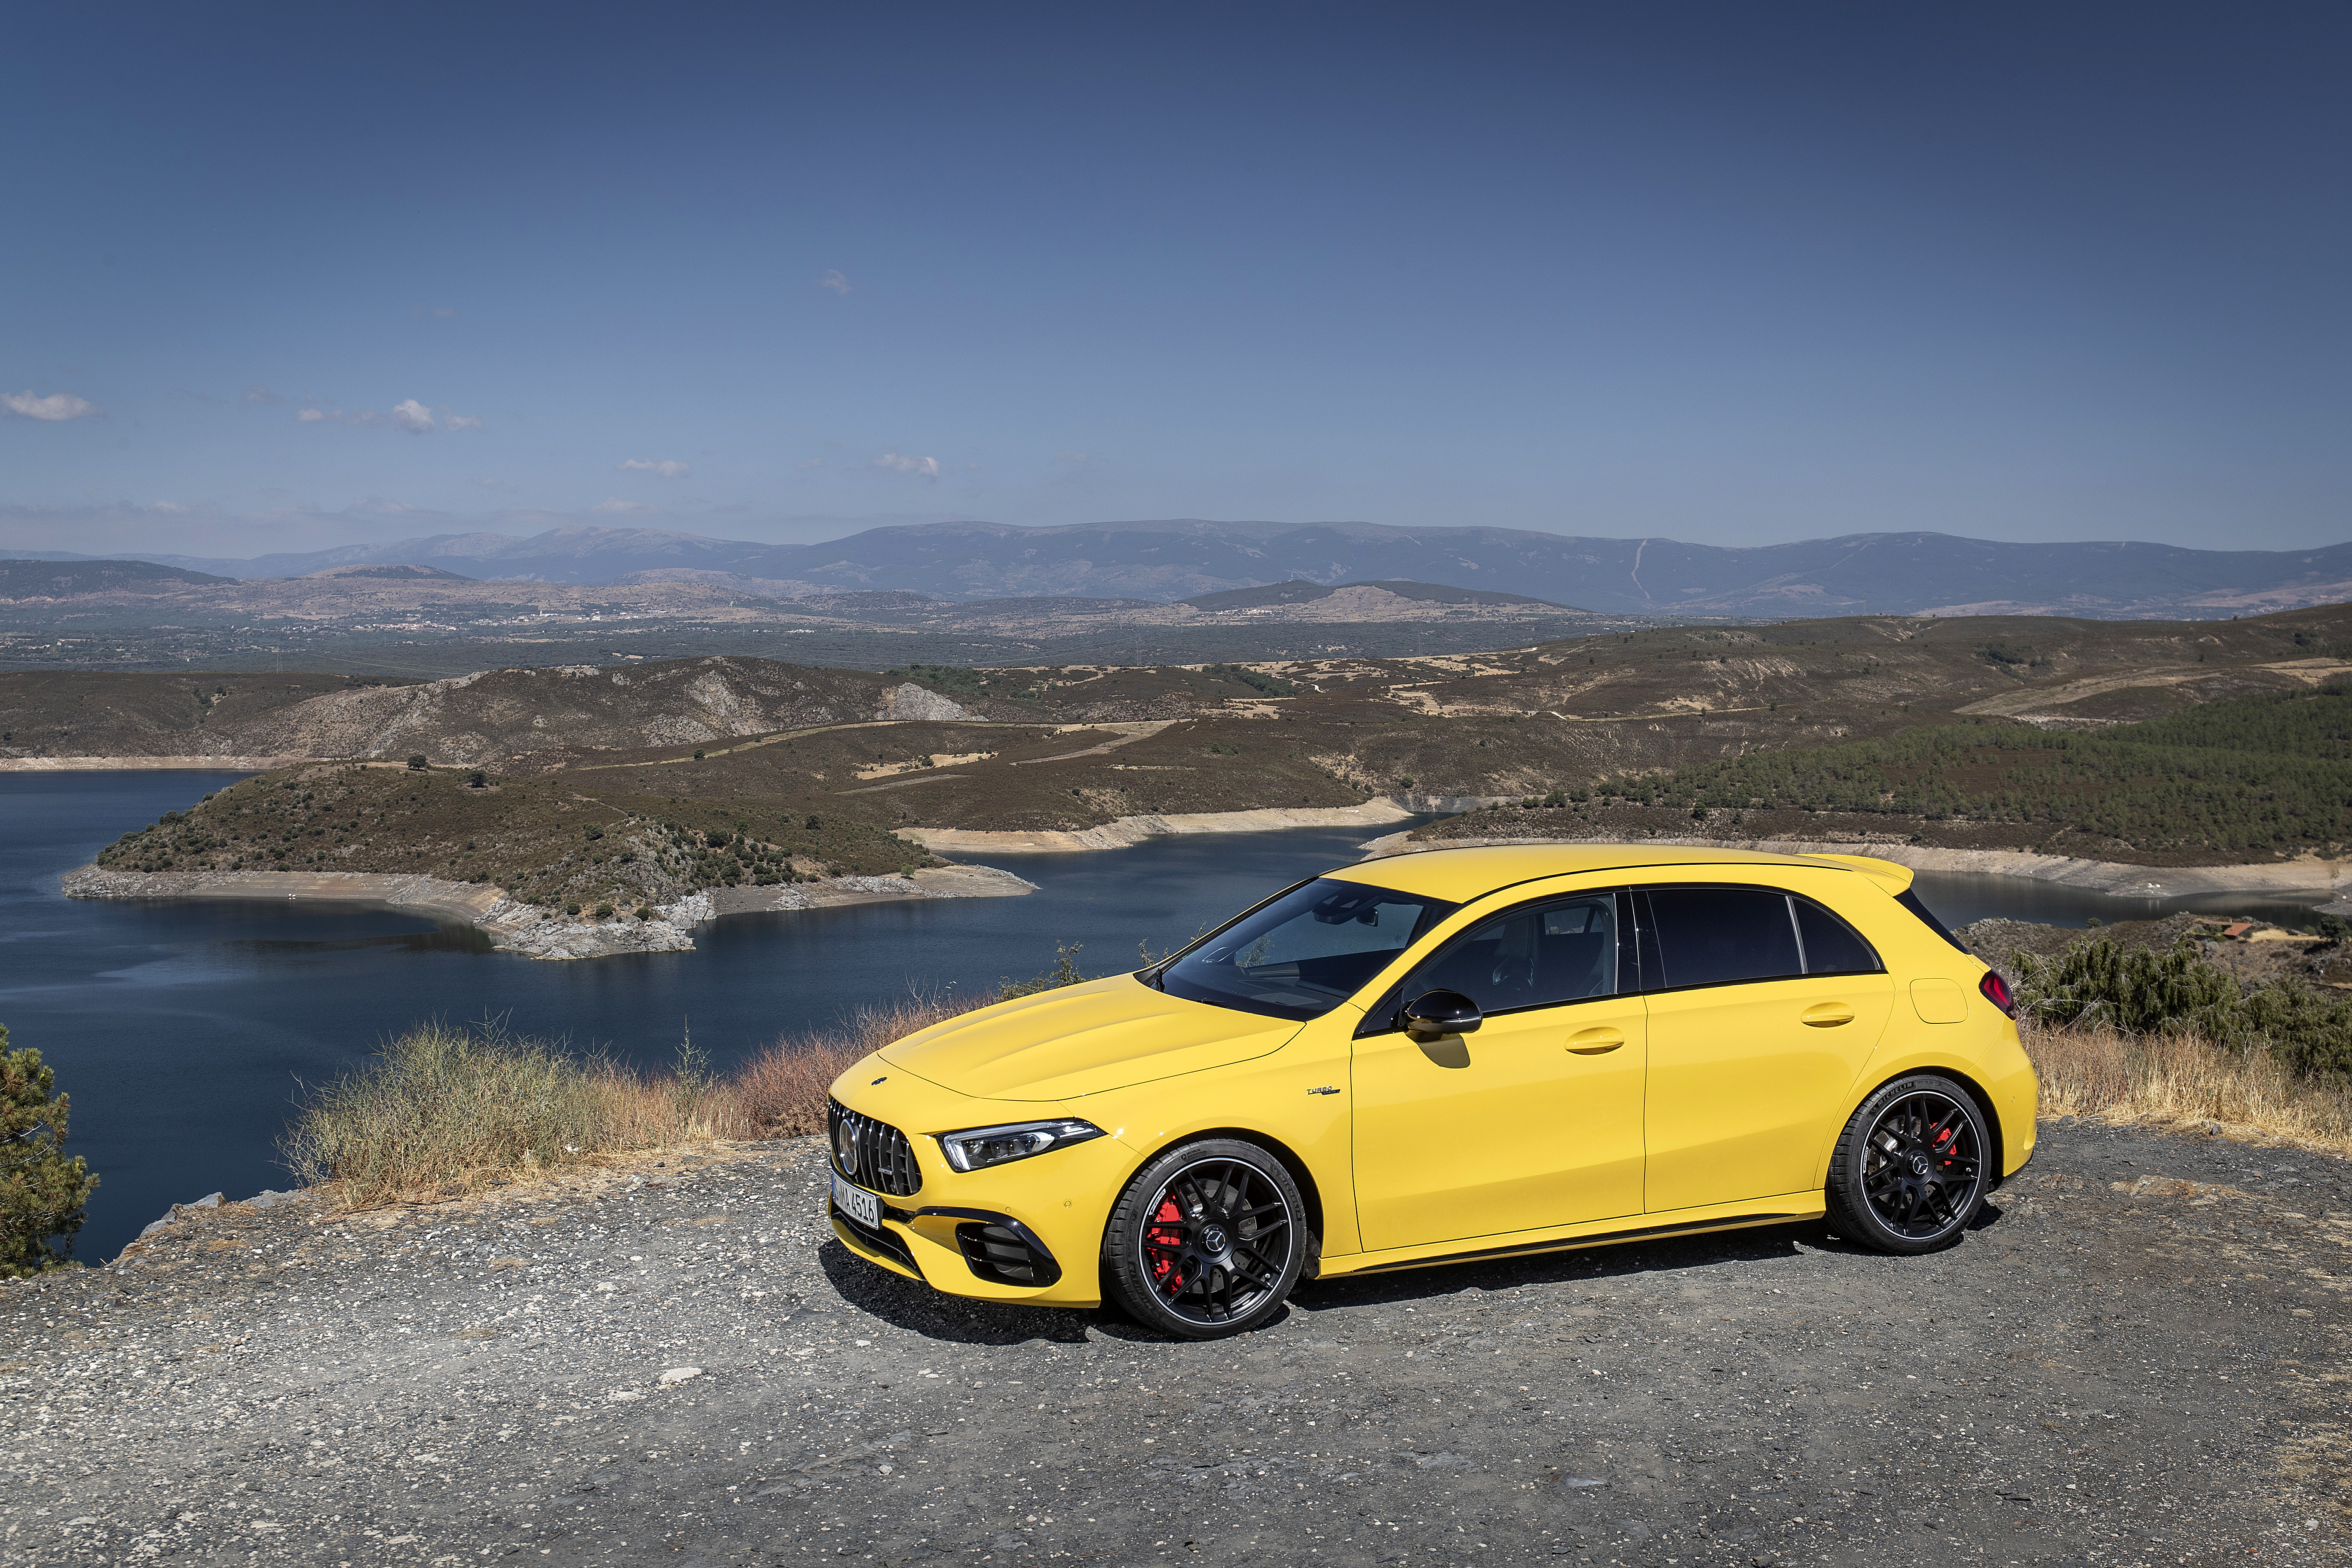 Bright yellow paint helps the car to stand out